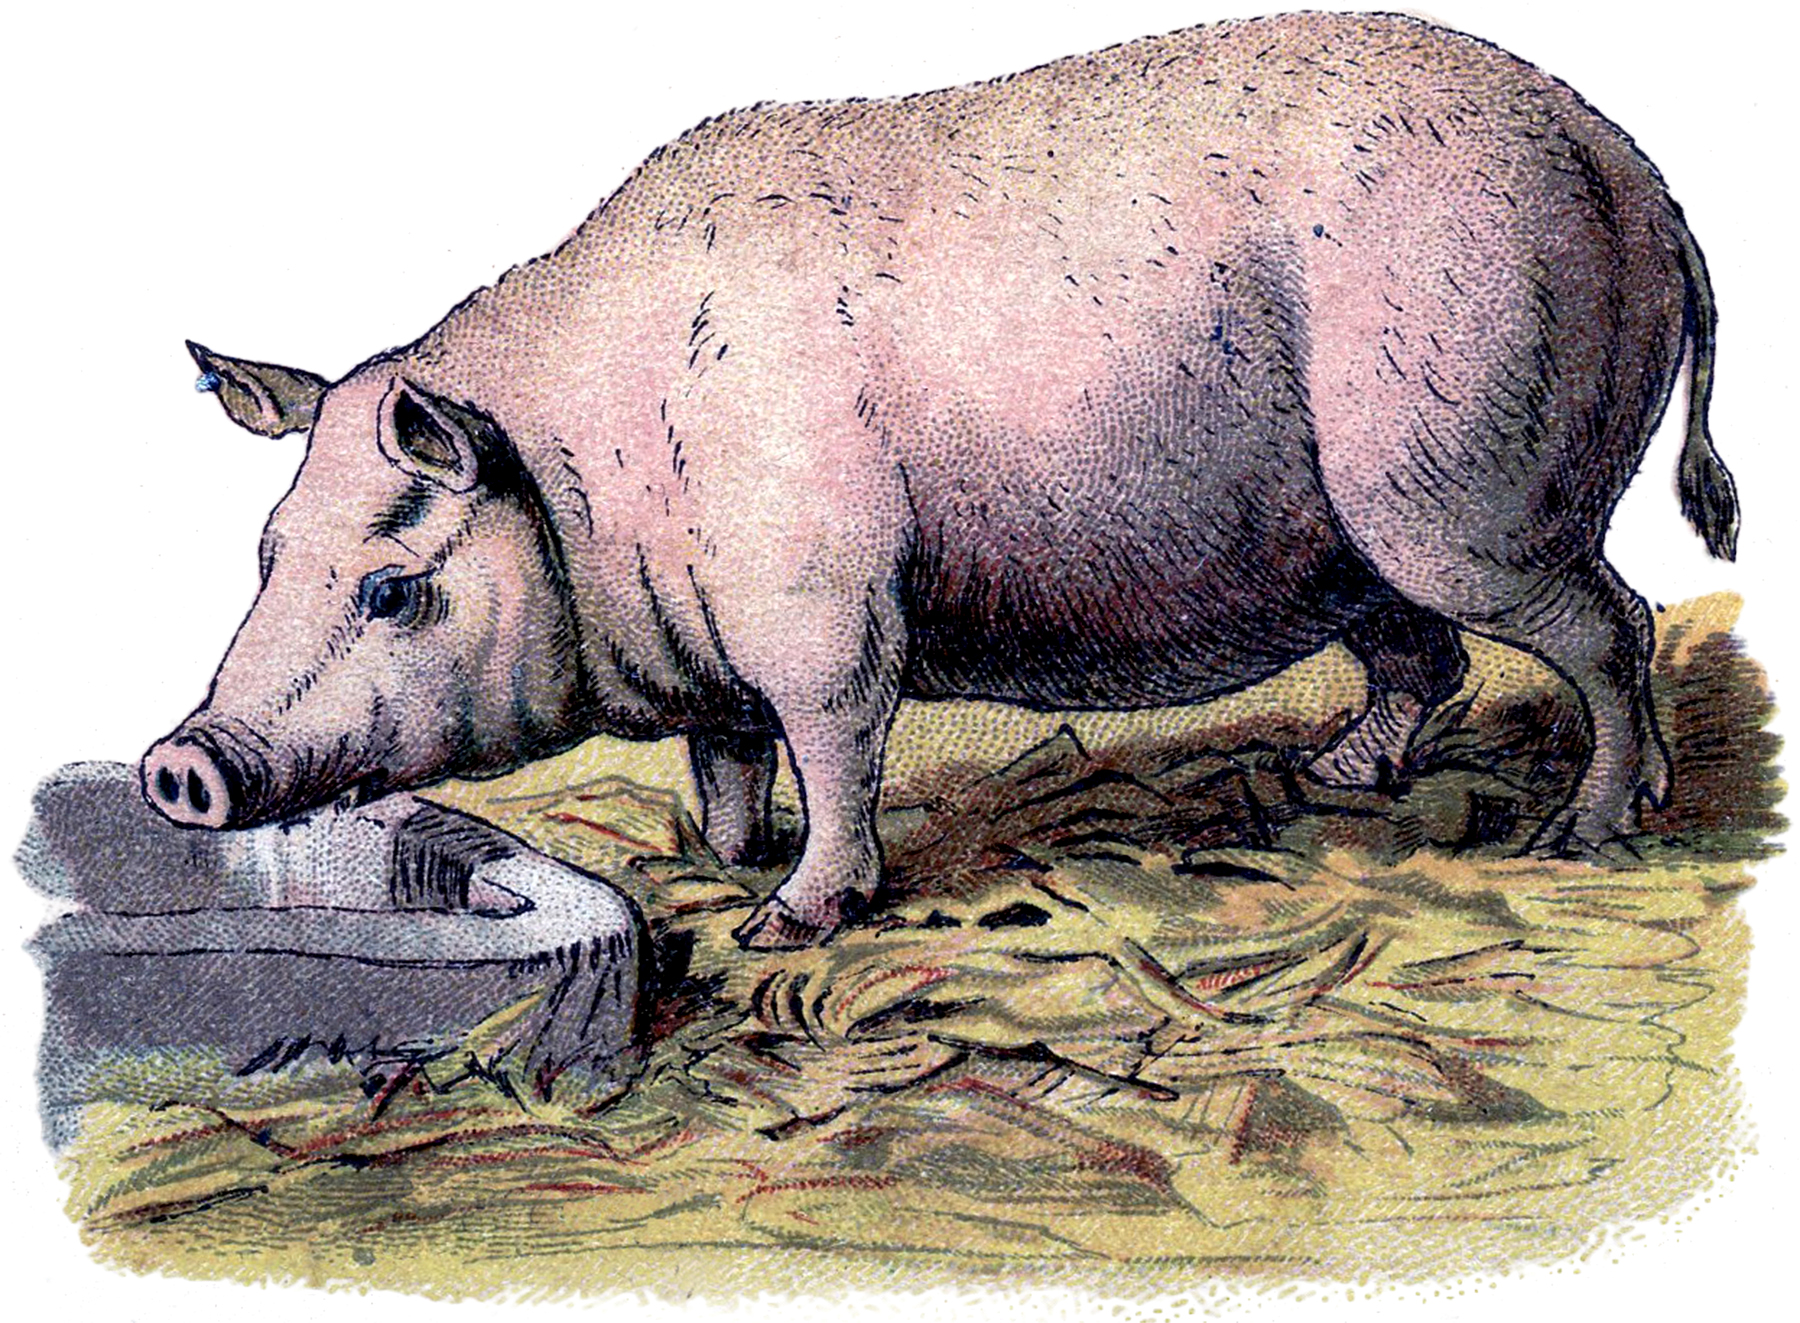 Vintage Pig Image! - The Graphics Fairy